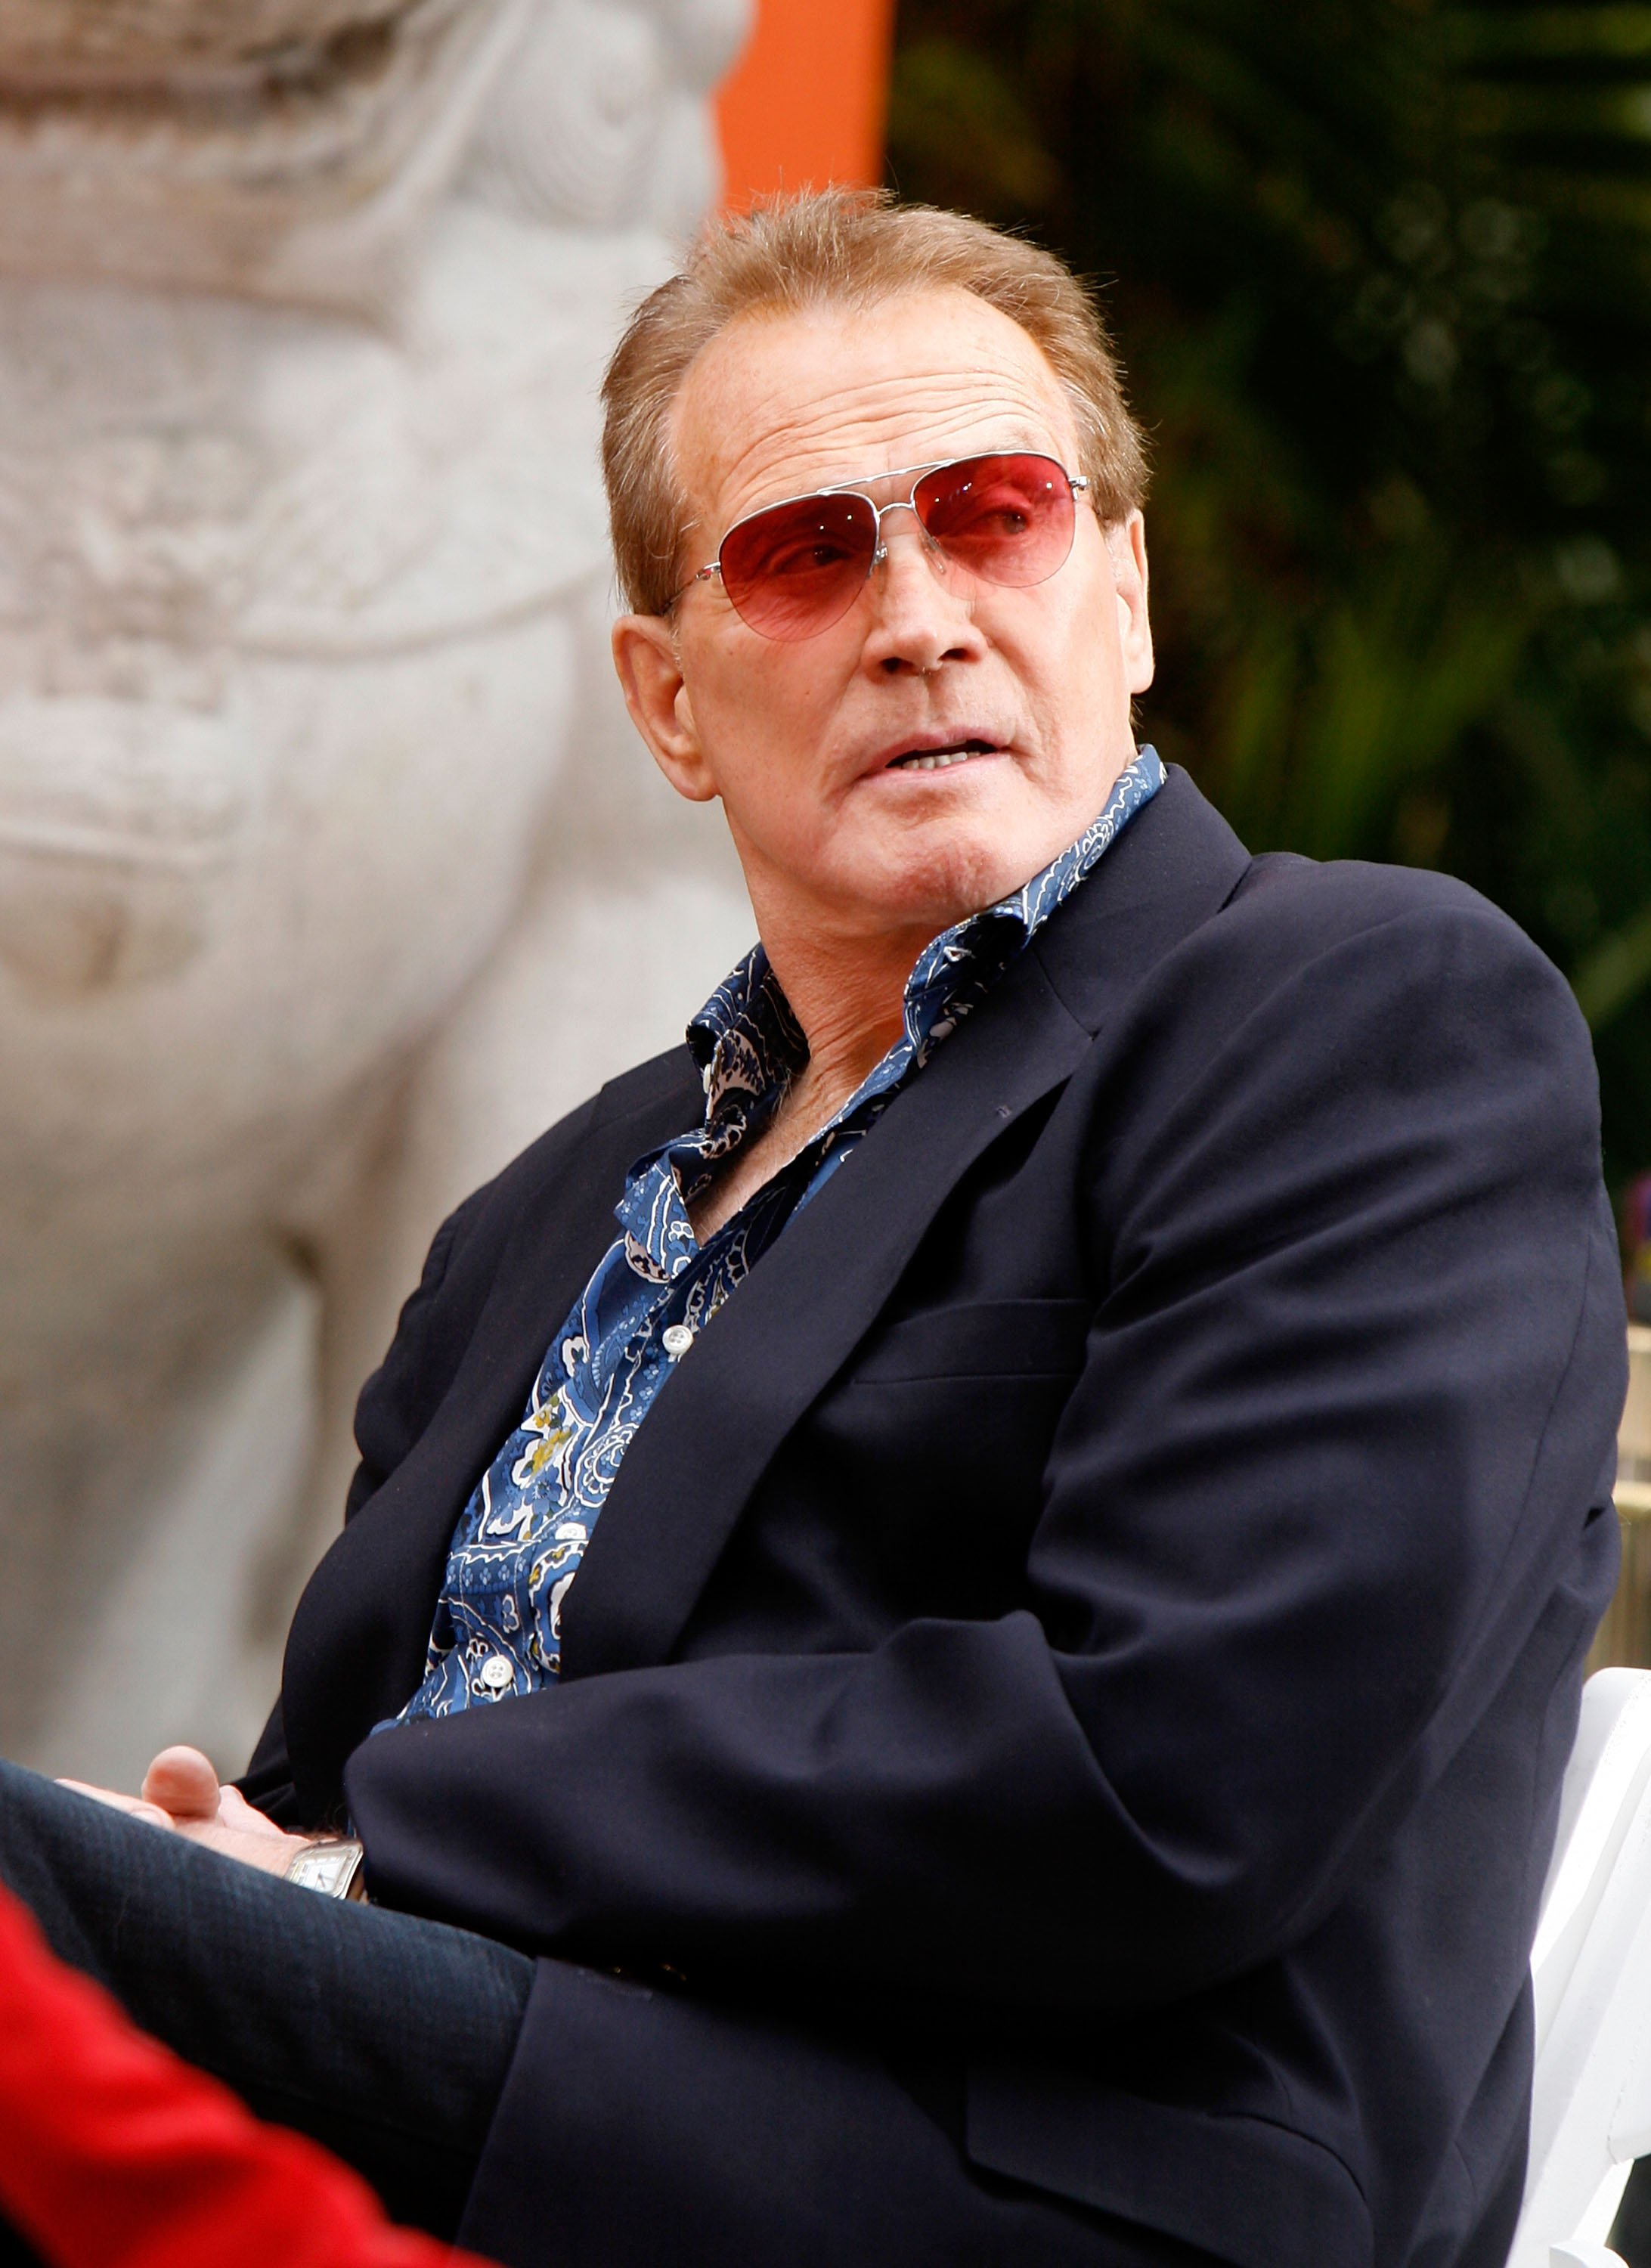 Lee Majors attends the Hand and Footprints Ceremony at Grauman's Chinese Theatre on June 5, 2007 | Photo: GettyImages